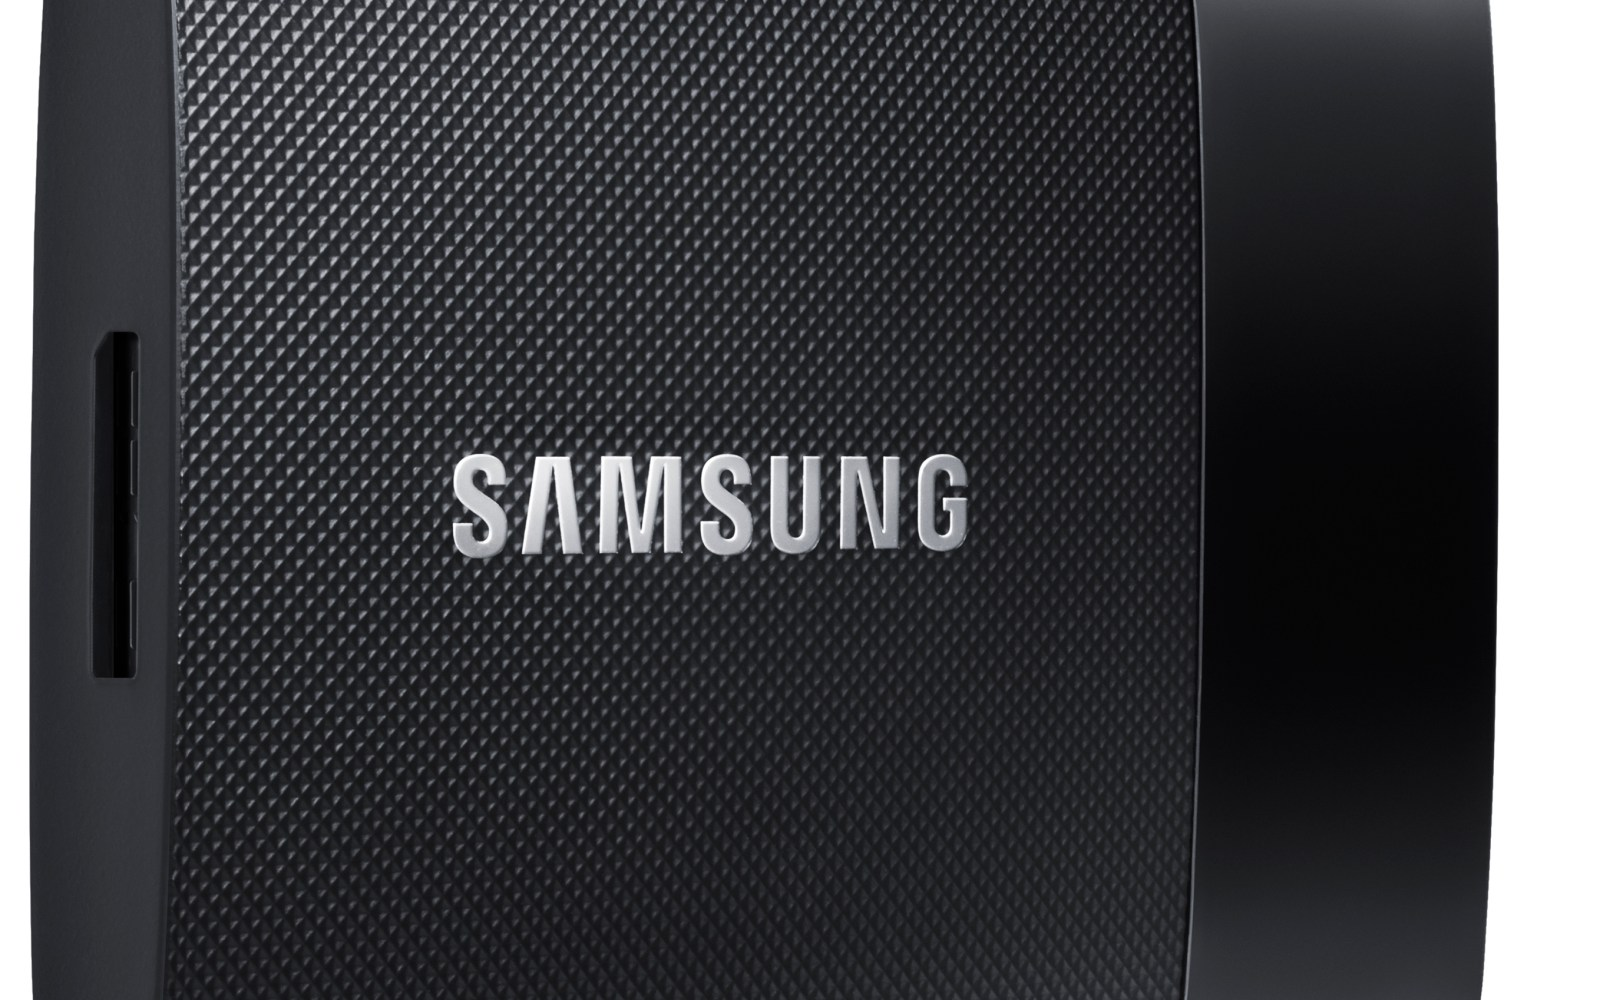 The Samsung portable SSD T1 is smaller than a business card and up to 100 times faster than a traditional HDD